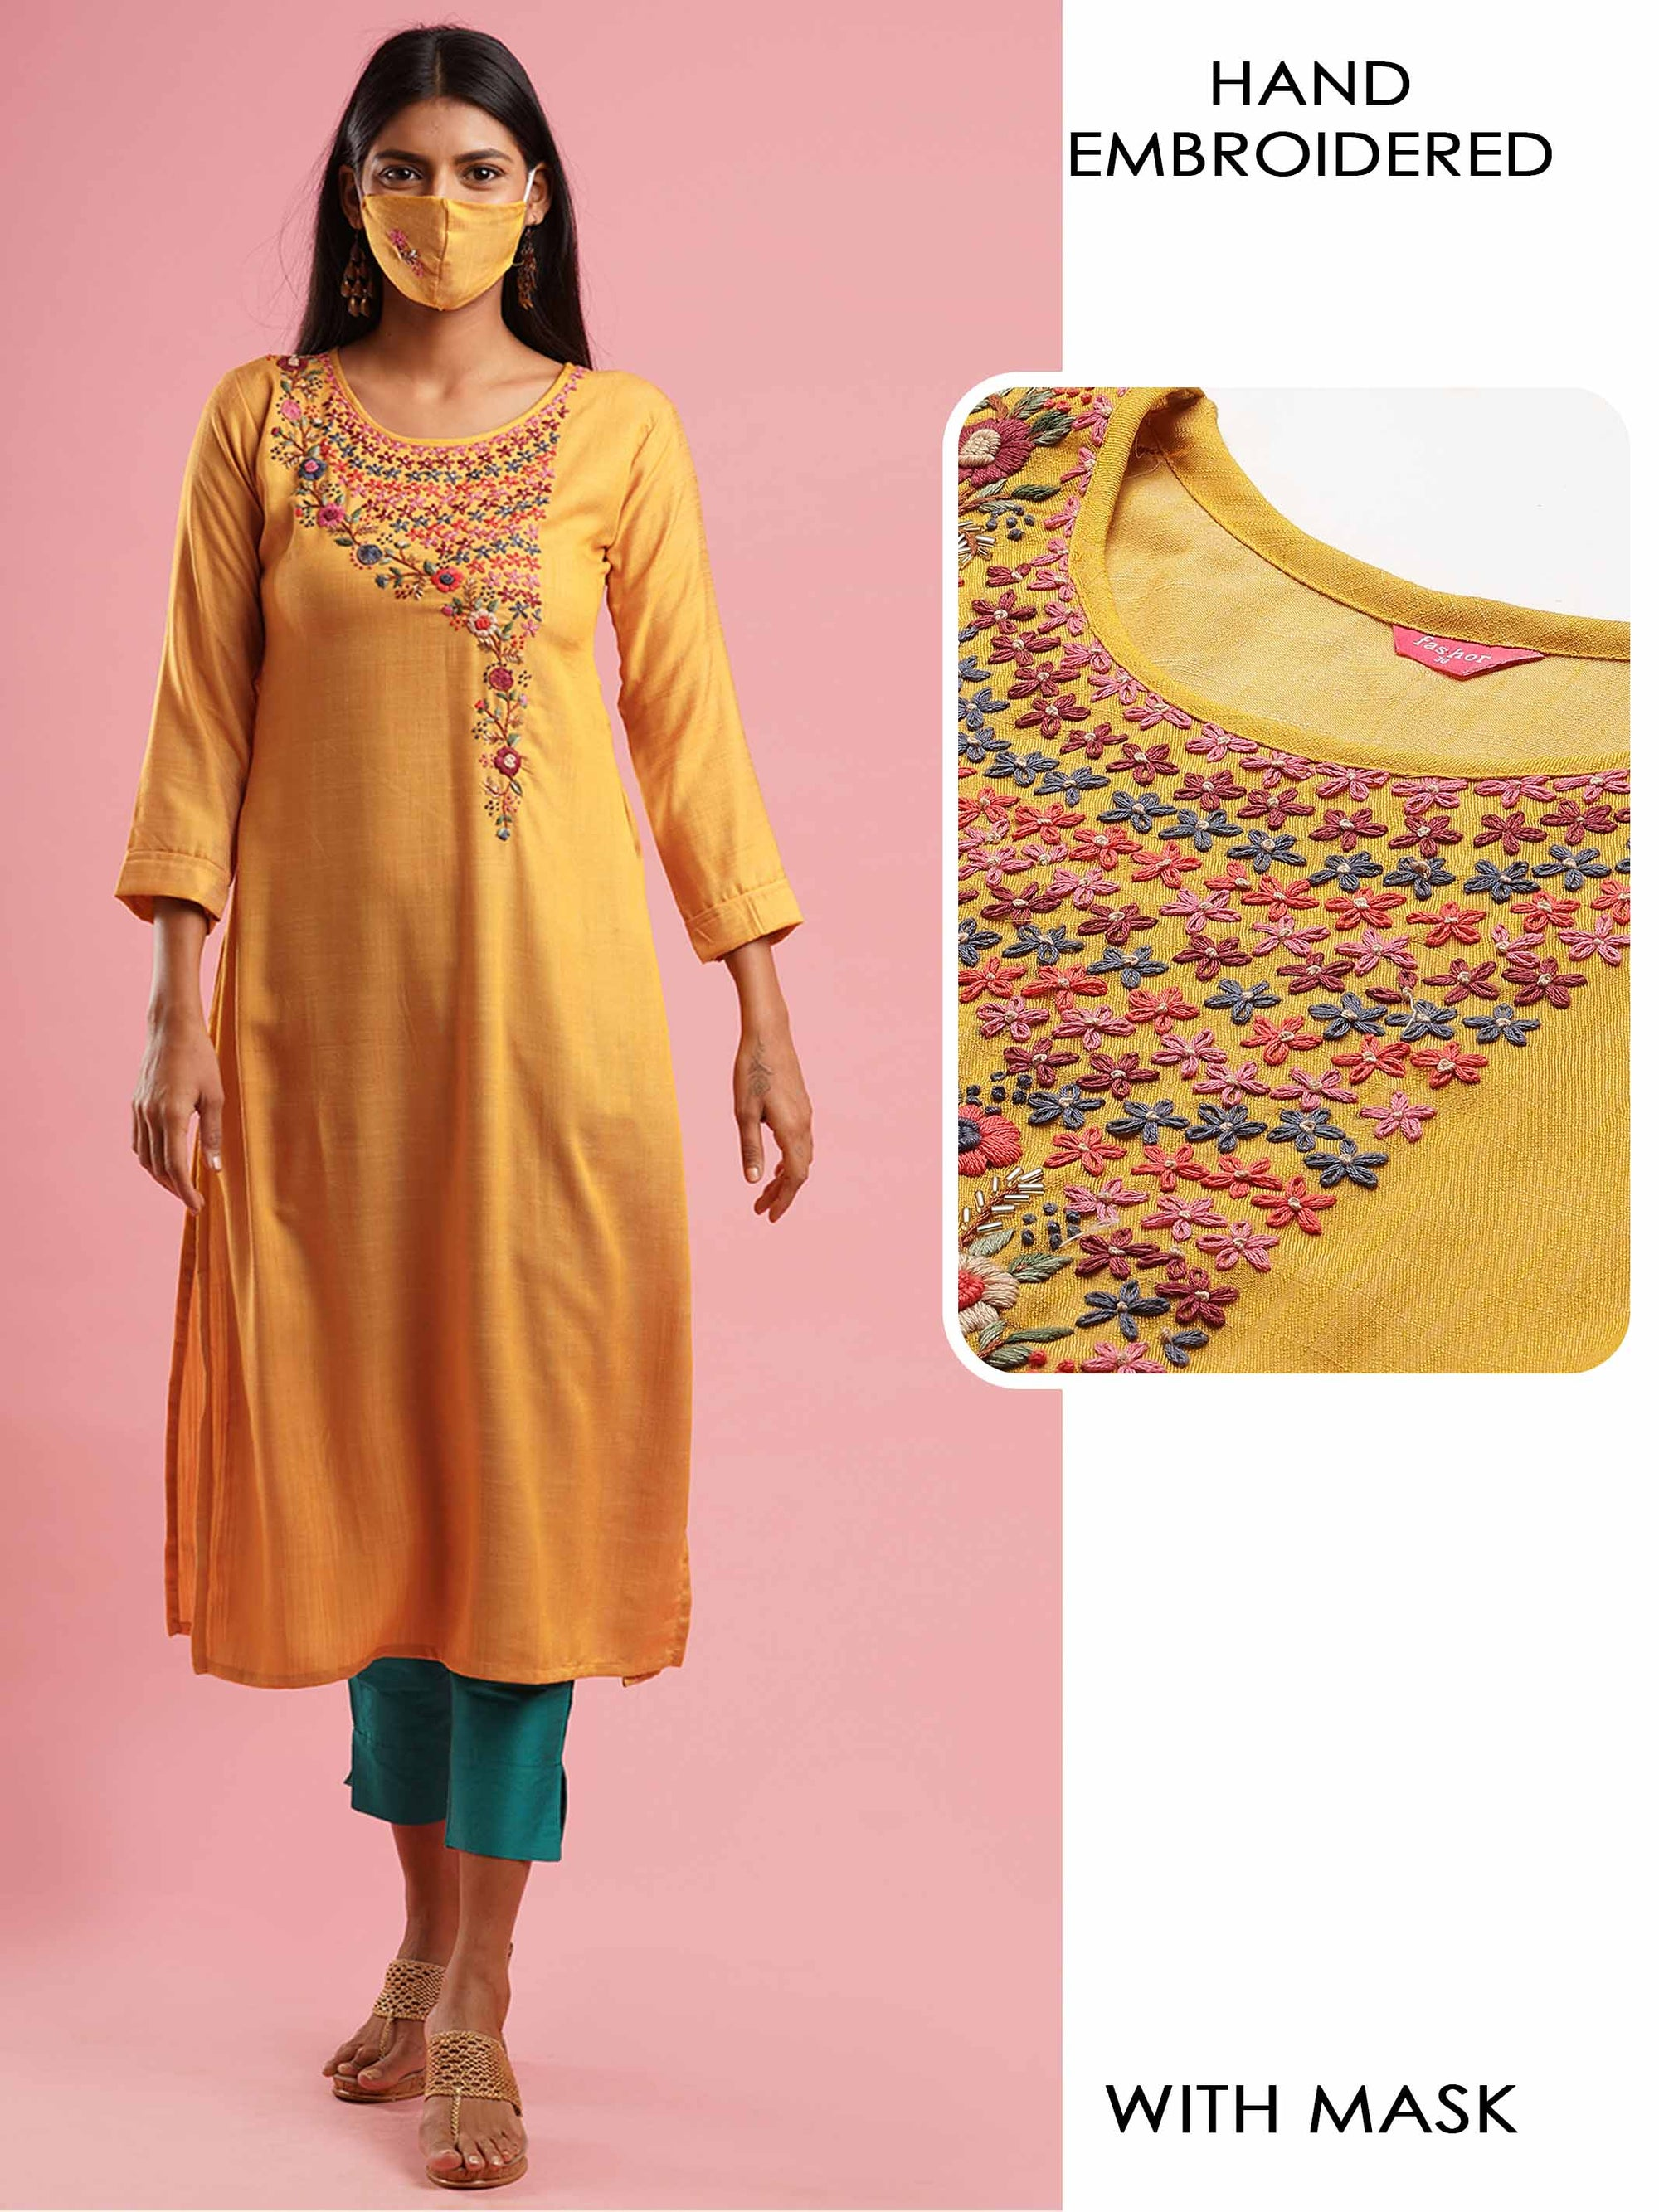 Floral Hand Embroidered Straight Kurta with 2-Ply Mask - Mustard